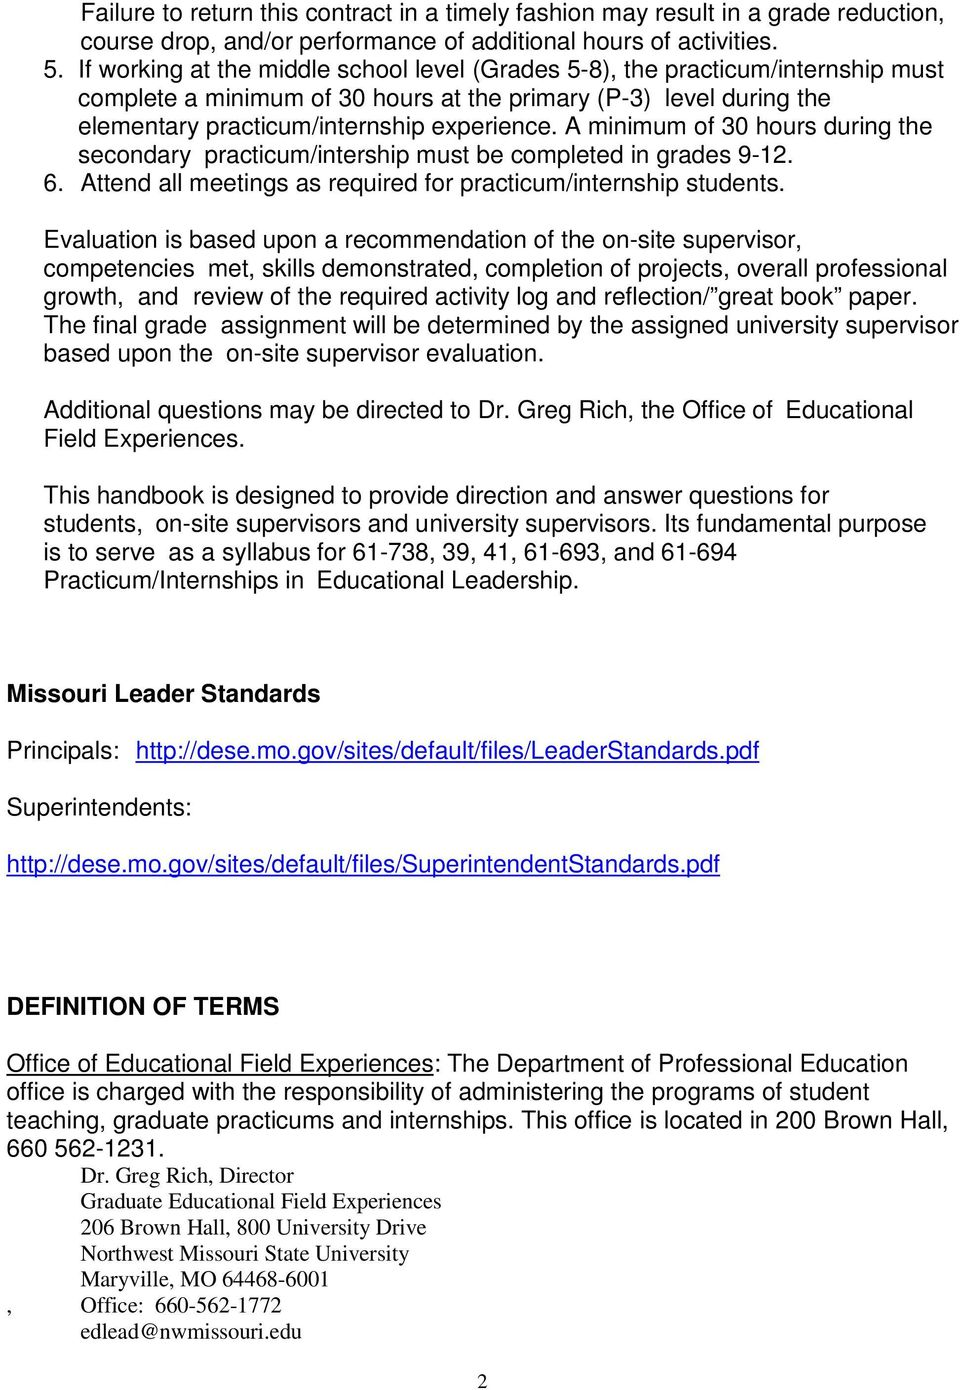 Research Essay Proposal Example  Business Etiquette Essay also Essay Science And Religion American Federalism Essays High School Vs College Essay Compare And Contrast